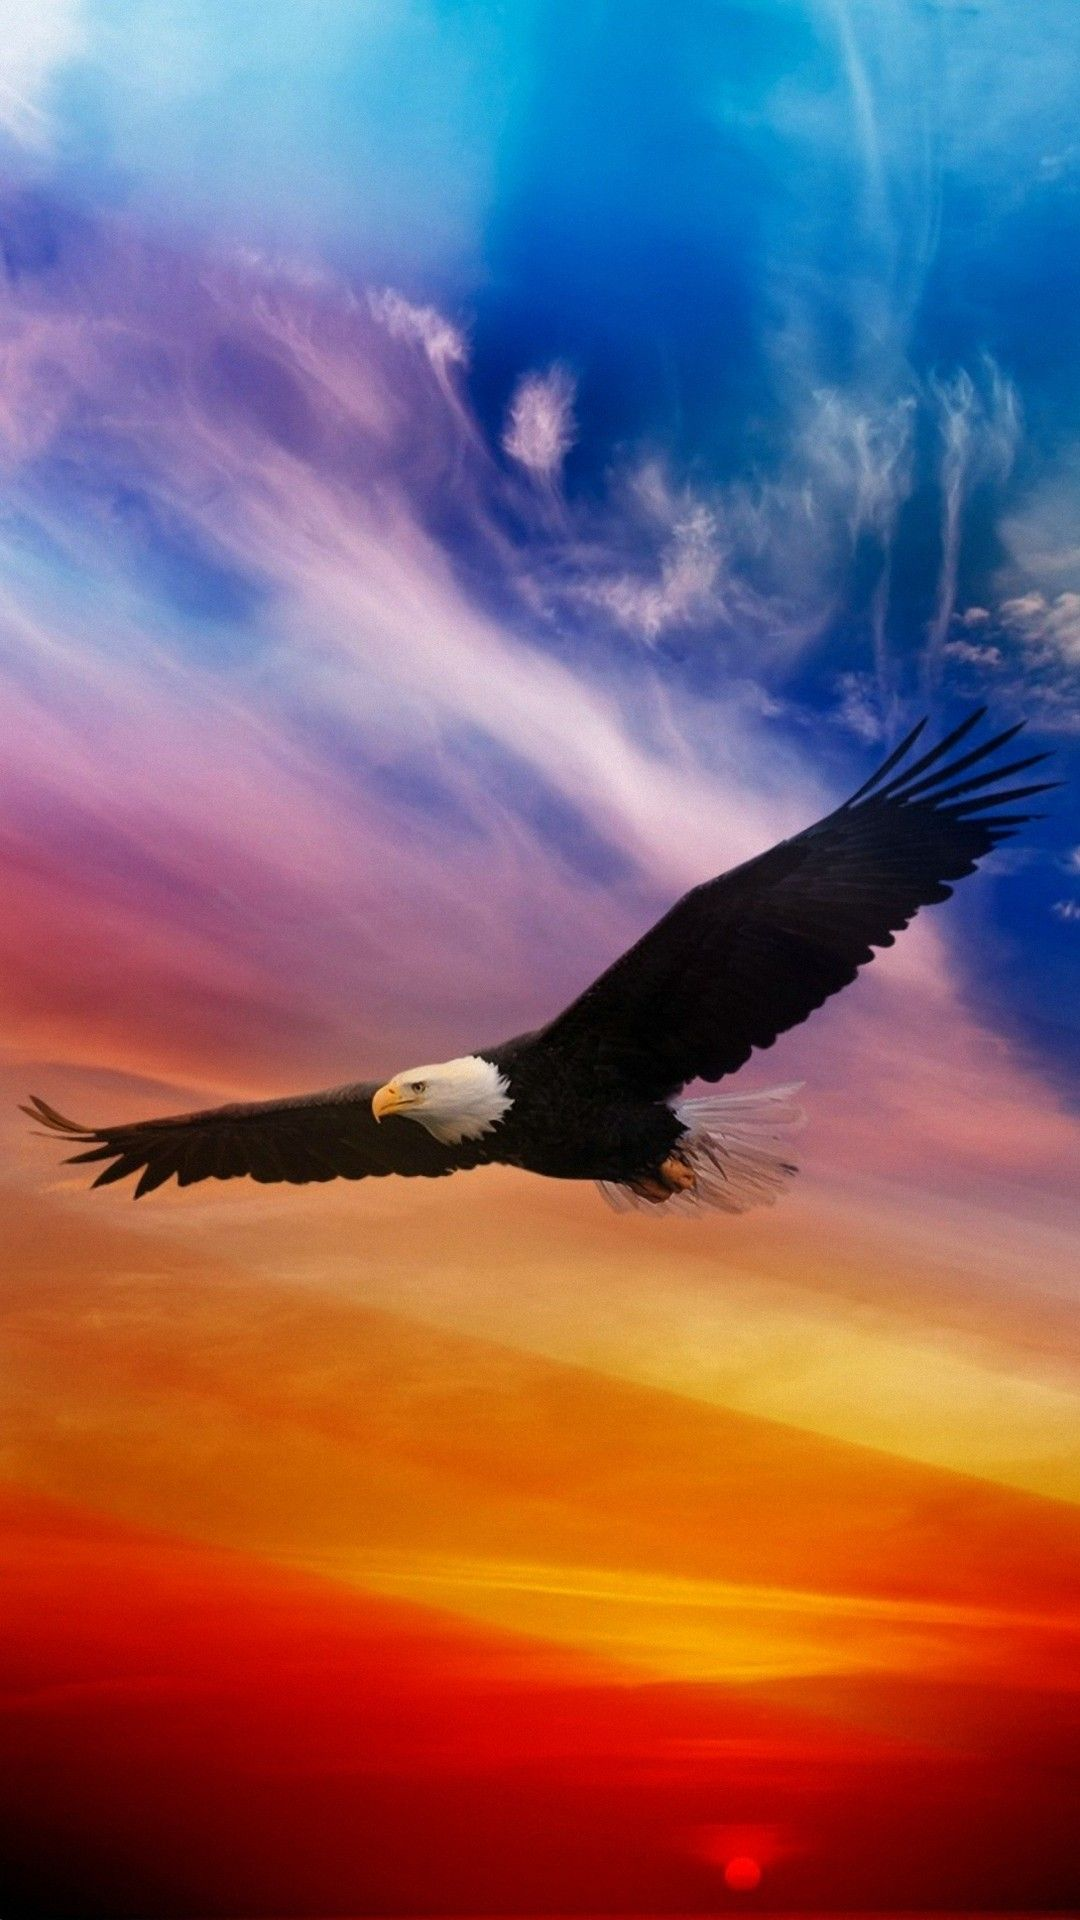 Eagle Wallpaper iPhone HD | iPhoneWallpapers | Eagle wallpaper, Sunset iphone wallpaper, Iphone ...